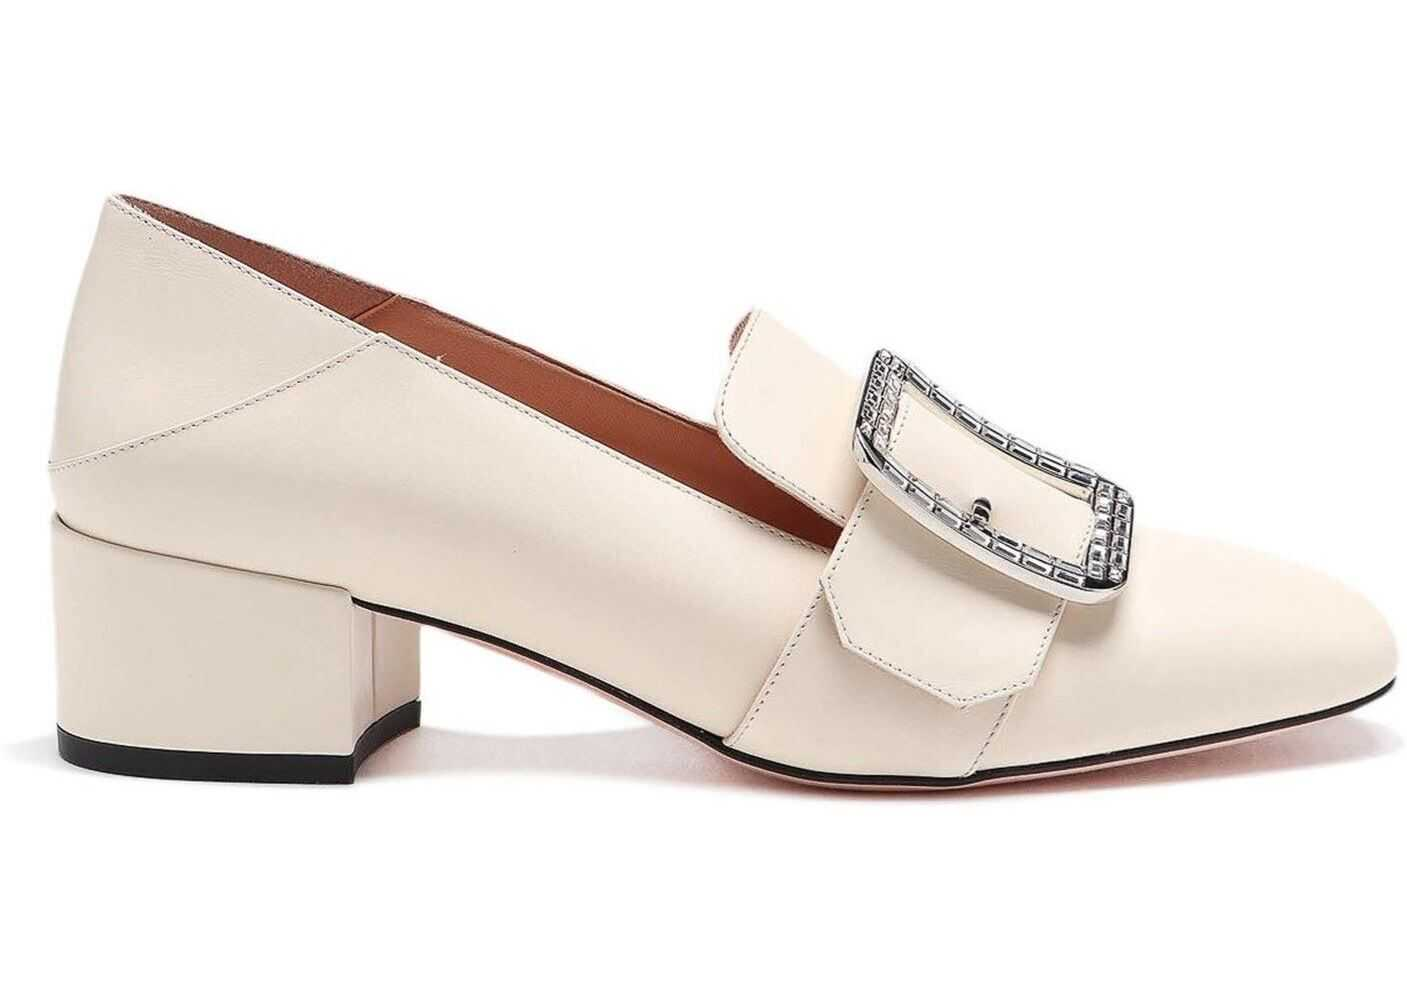 Bally Janelle Crystal Loafers Style Pumps Cream